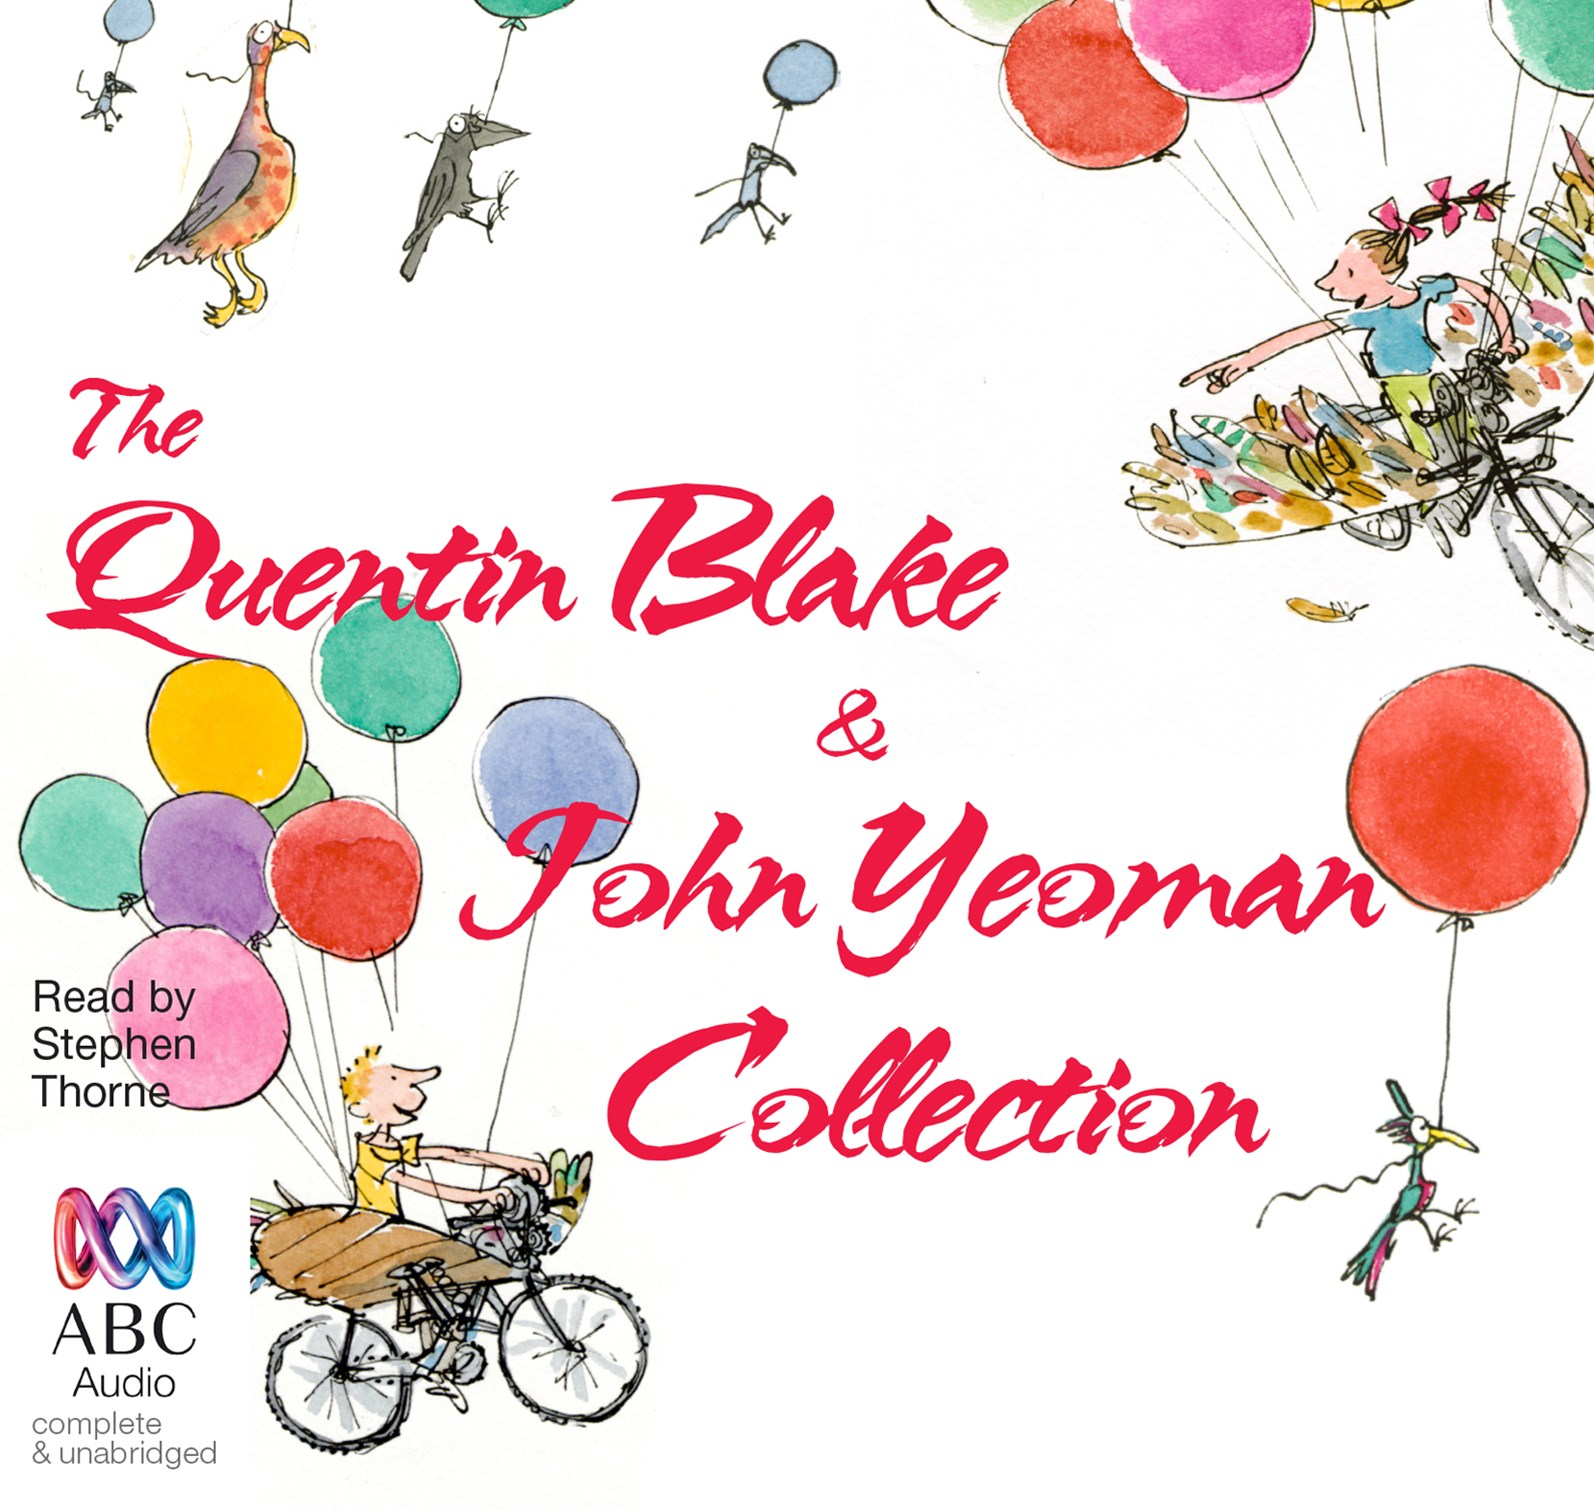 QUENTIN BLAKE & JOHN YEOMAN COLLECTION C